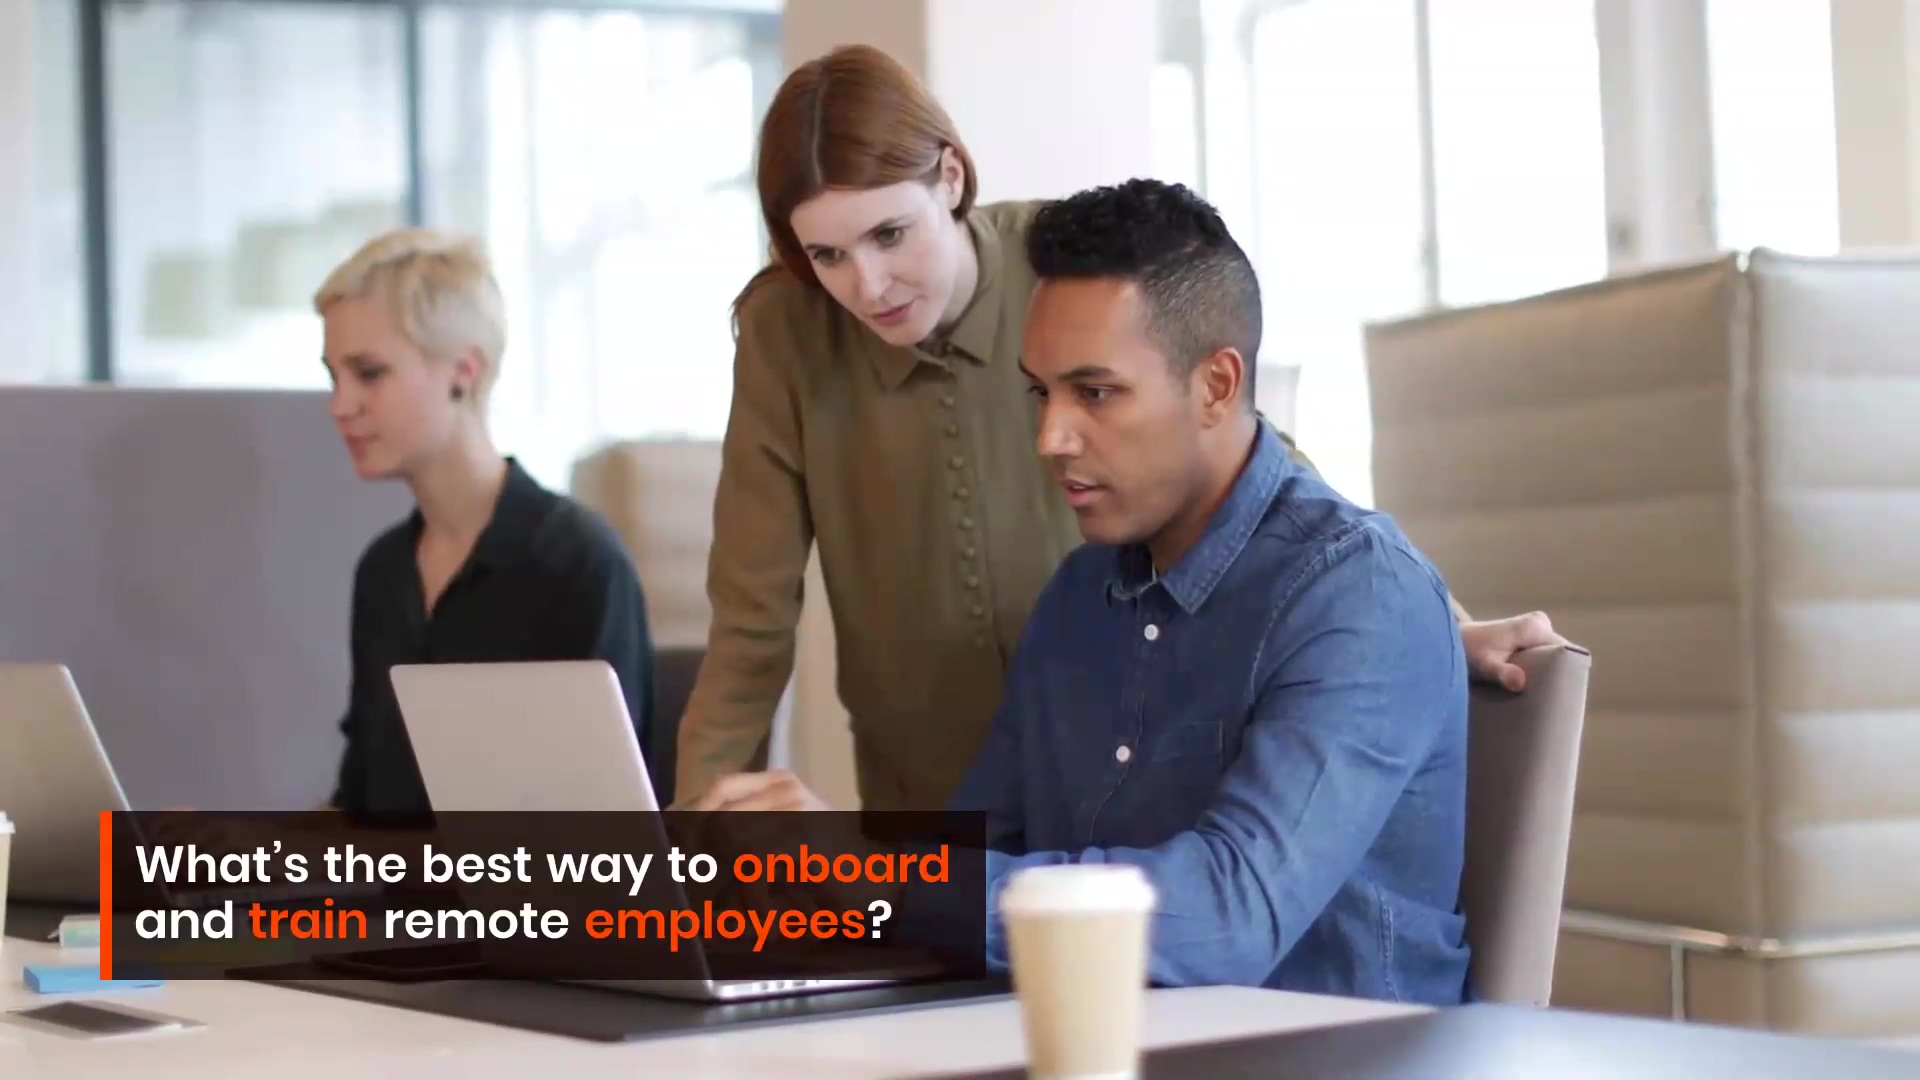 Remote employee onboarding and training using Apty